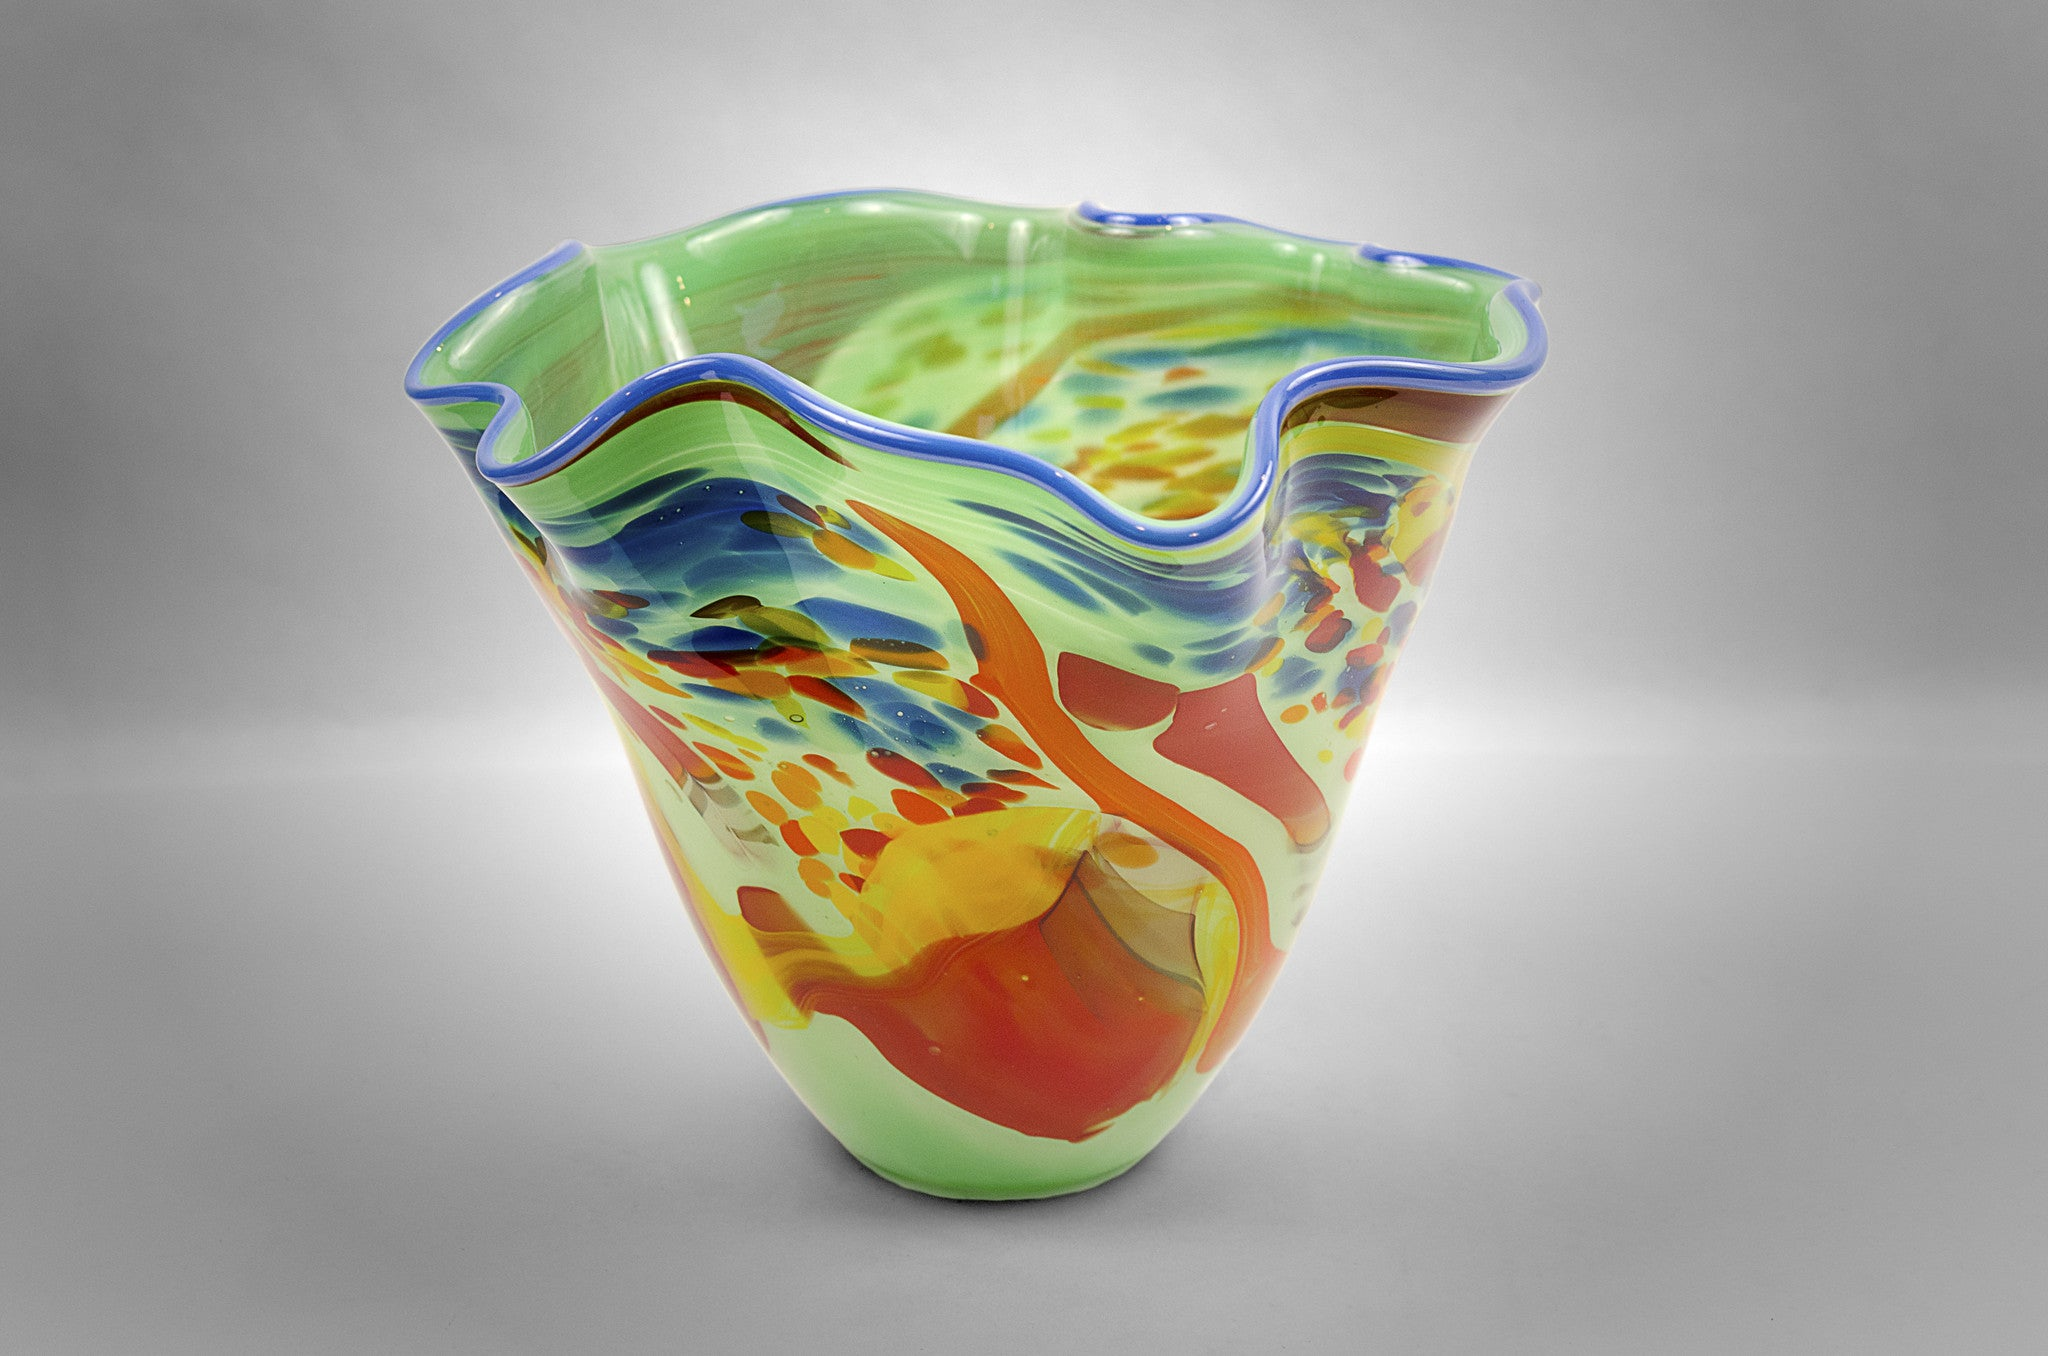 Fluted bowl / vase with broken shards of recycled glass and light green base color and blue rim